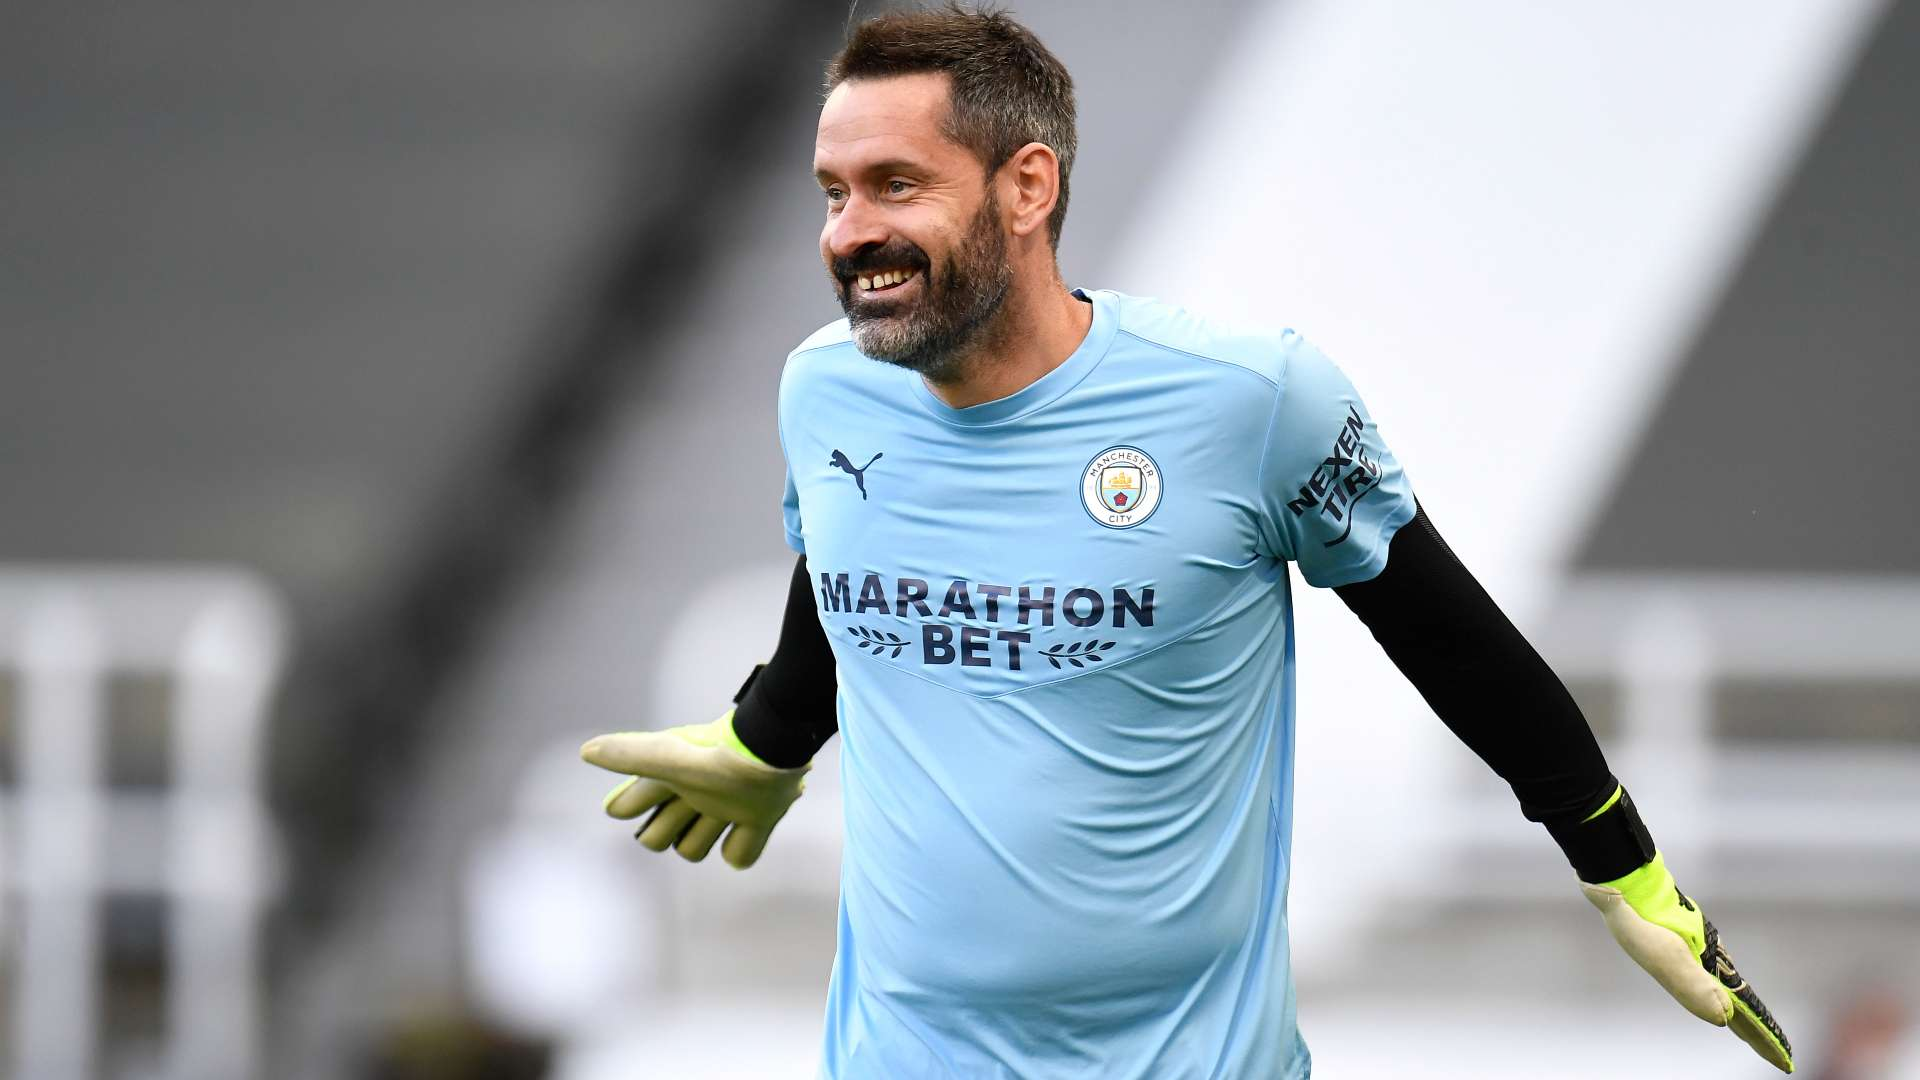 Scott Carson Signs One-Year Contract with Man City